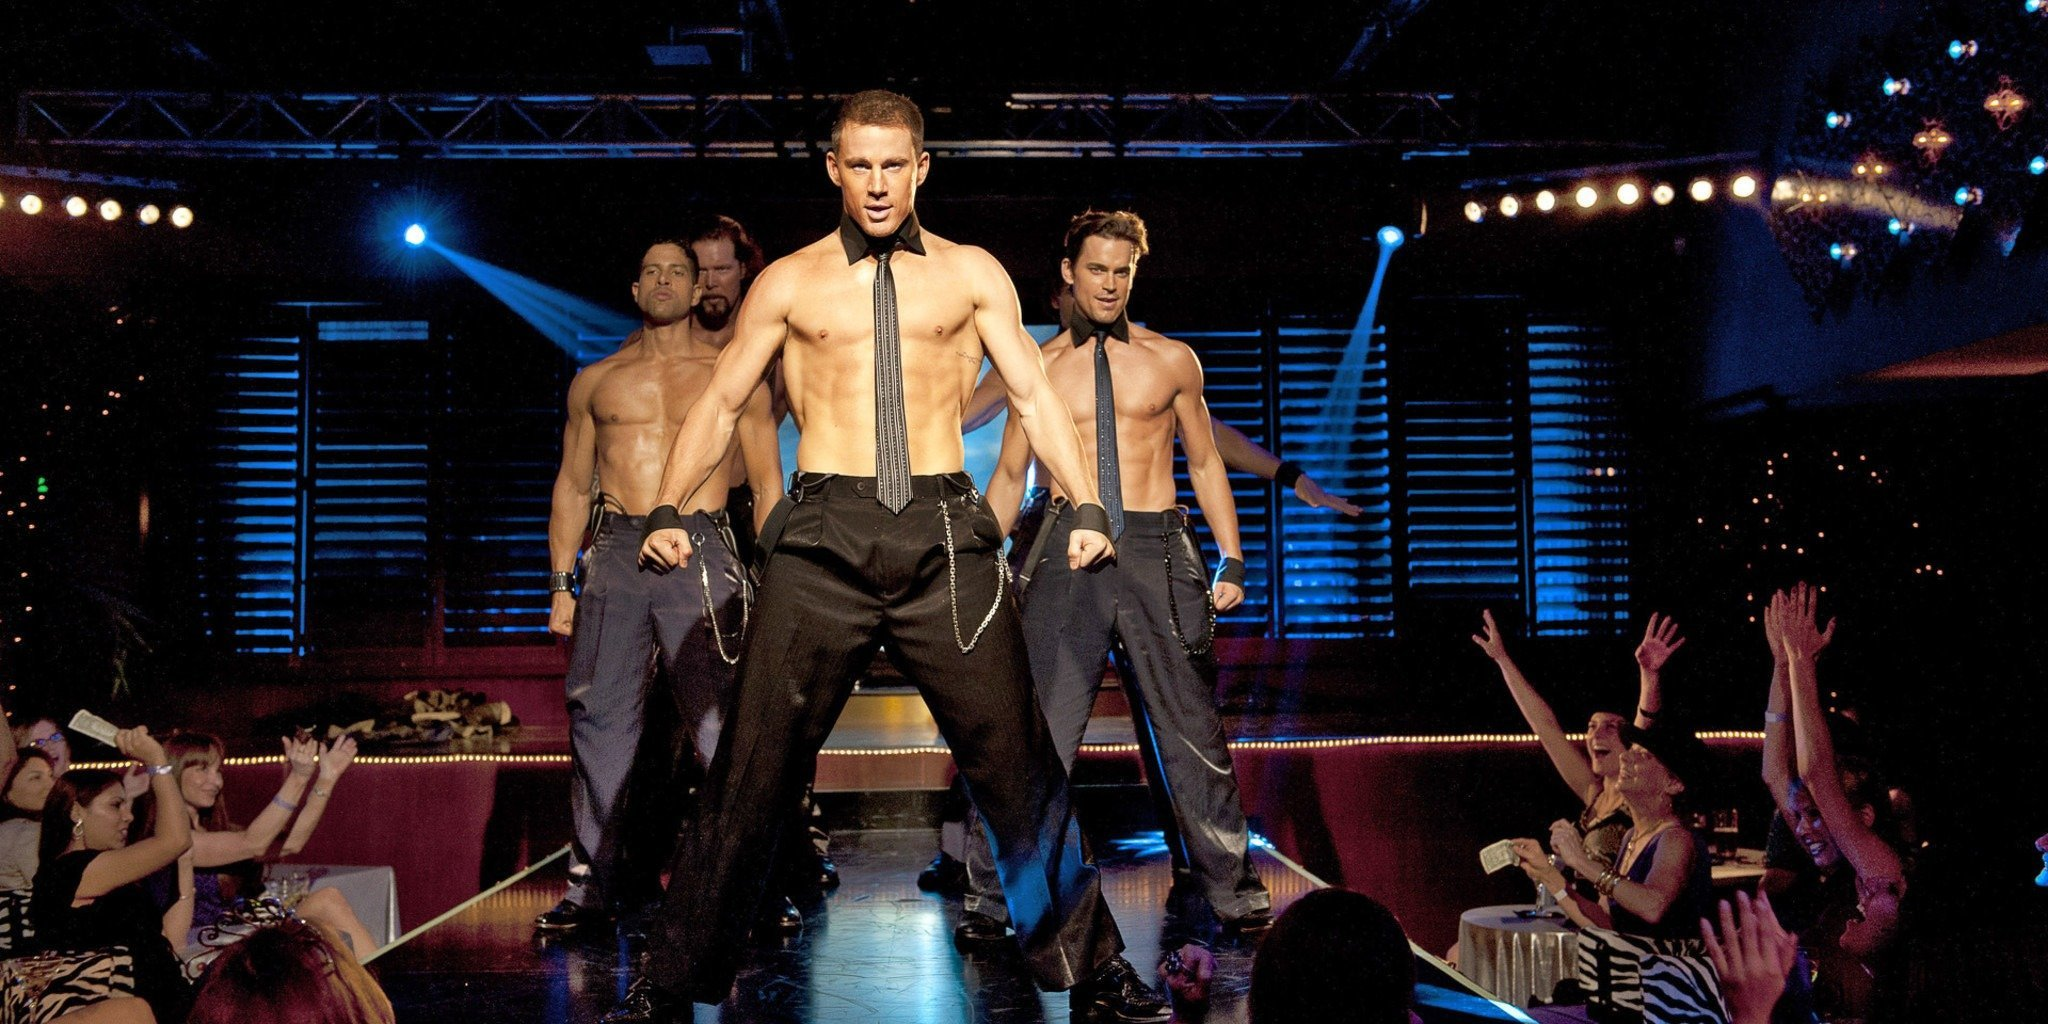 Magic Mike: Extras